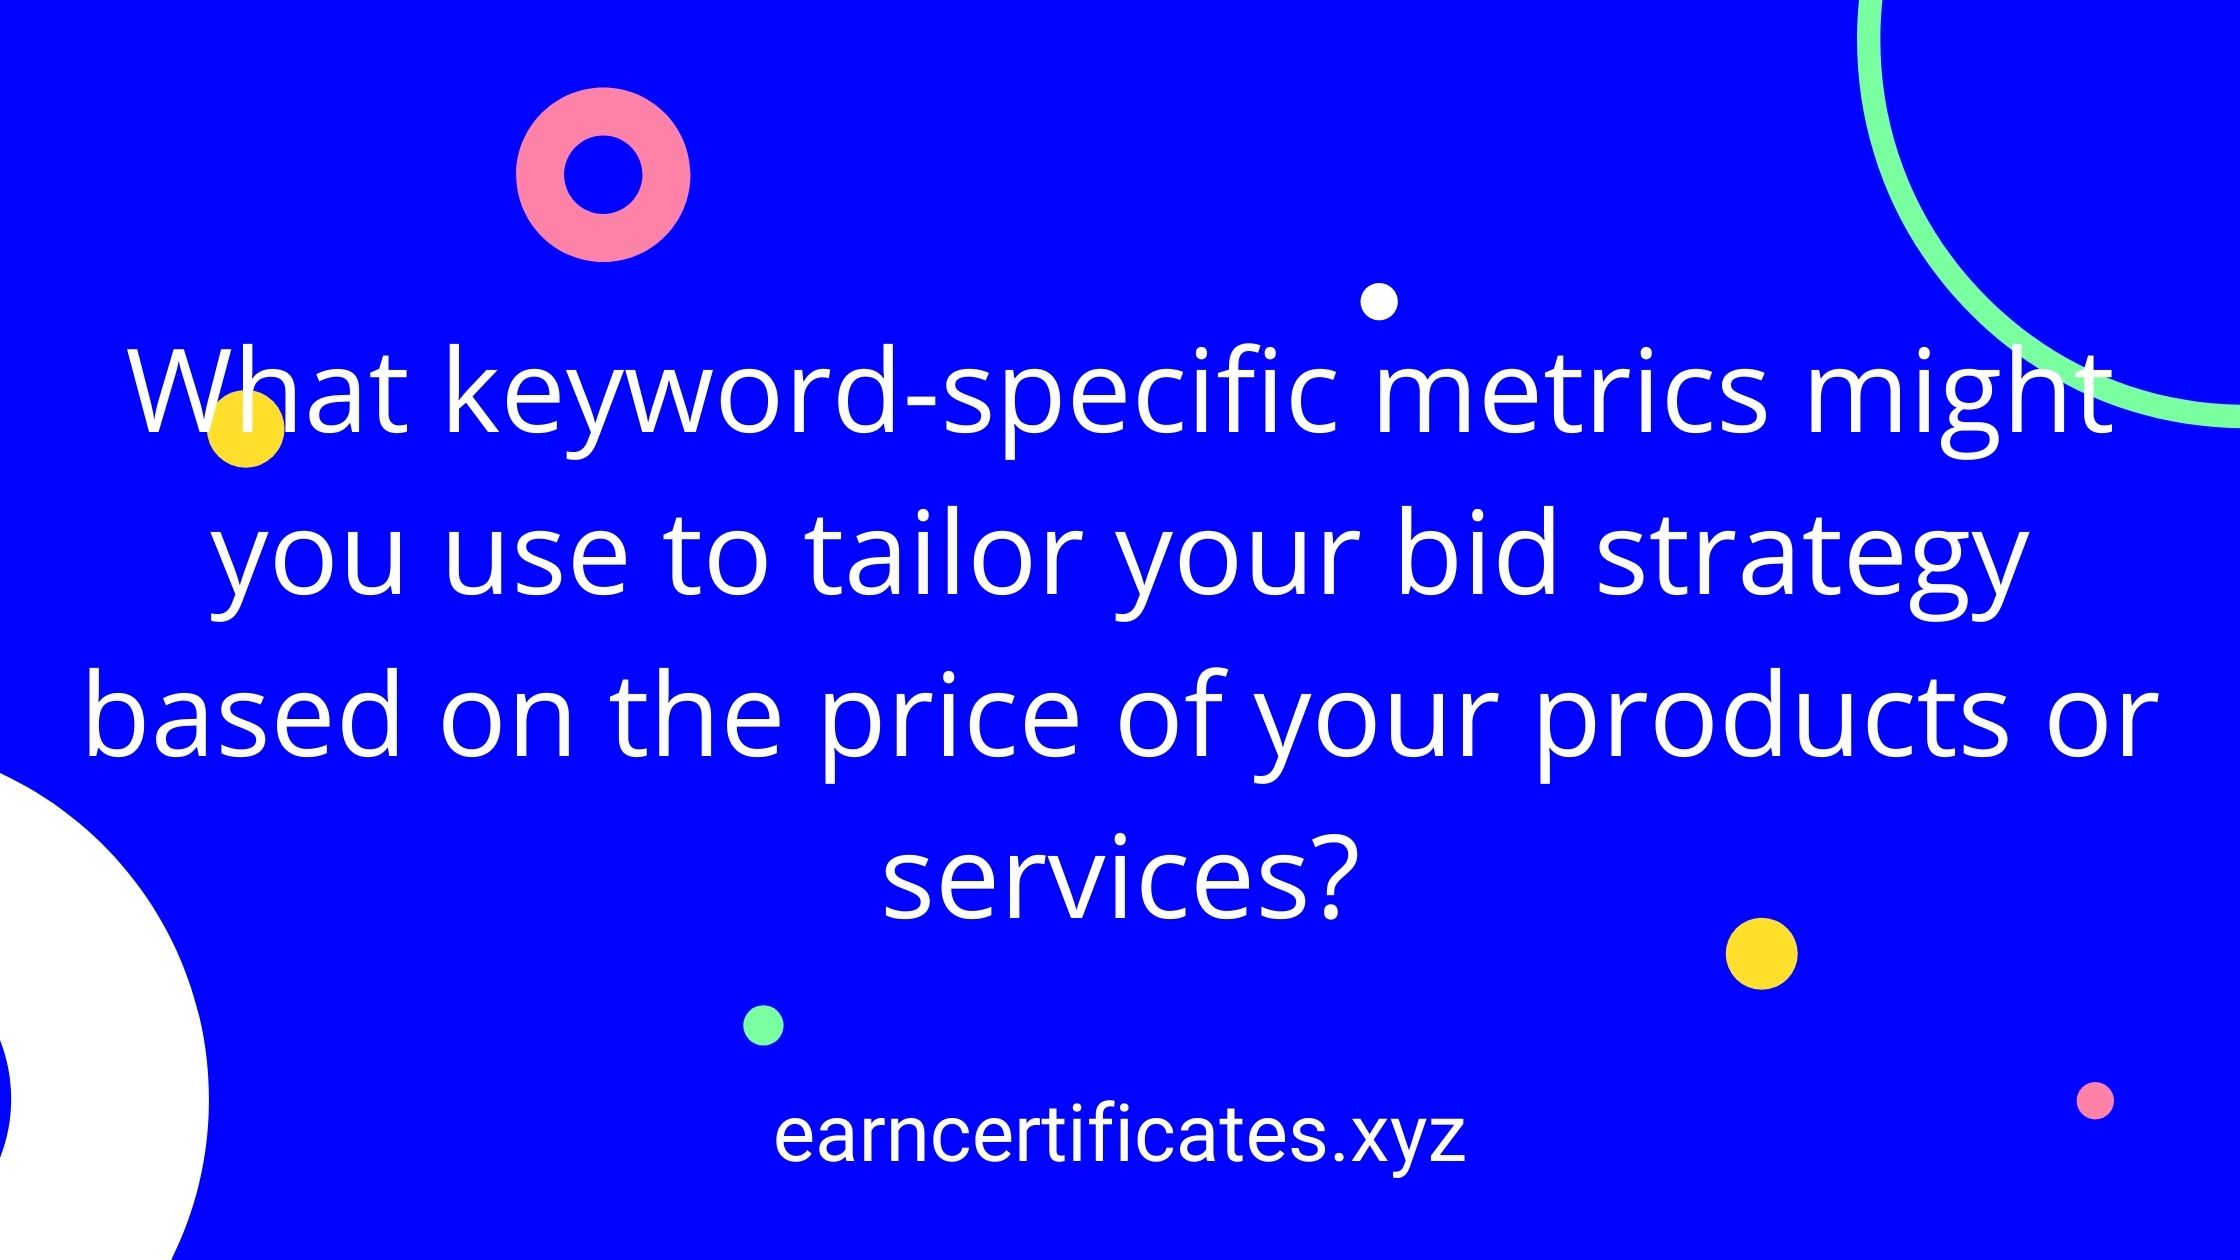 What keyword-specific metrics might you use to tailor your bid strategy based on the price of your products or services?